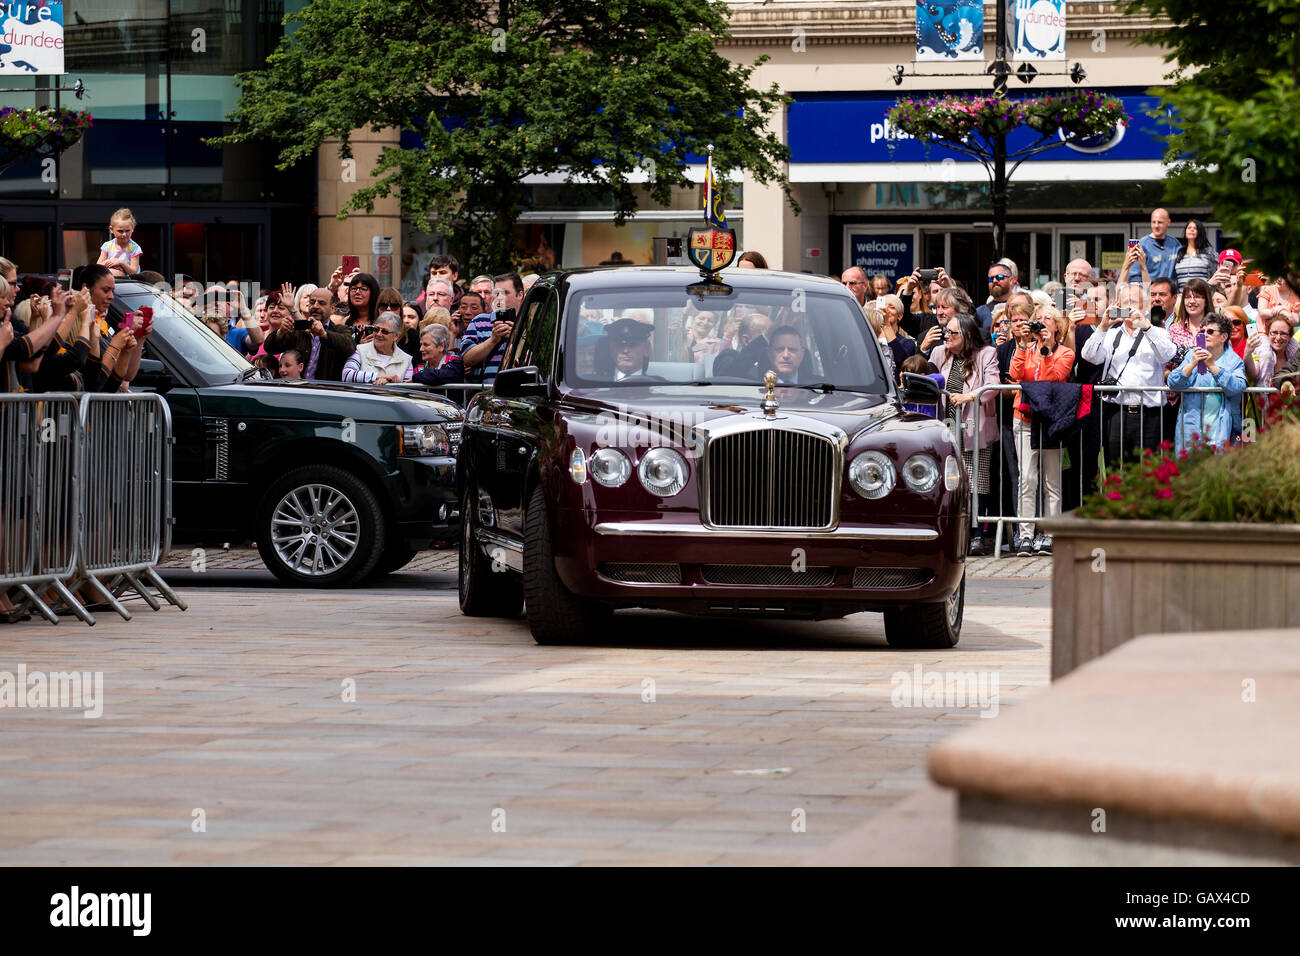 Dundee, Tayside, Scotland, UK. July 6th 2016. Her Majesty The Queen and His Royal Highness Prince Philip arriving Stock Photo